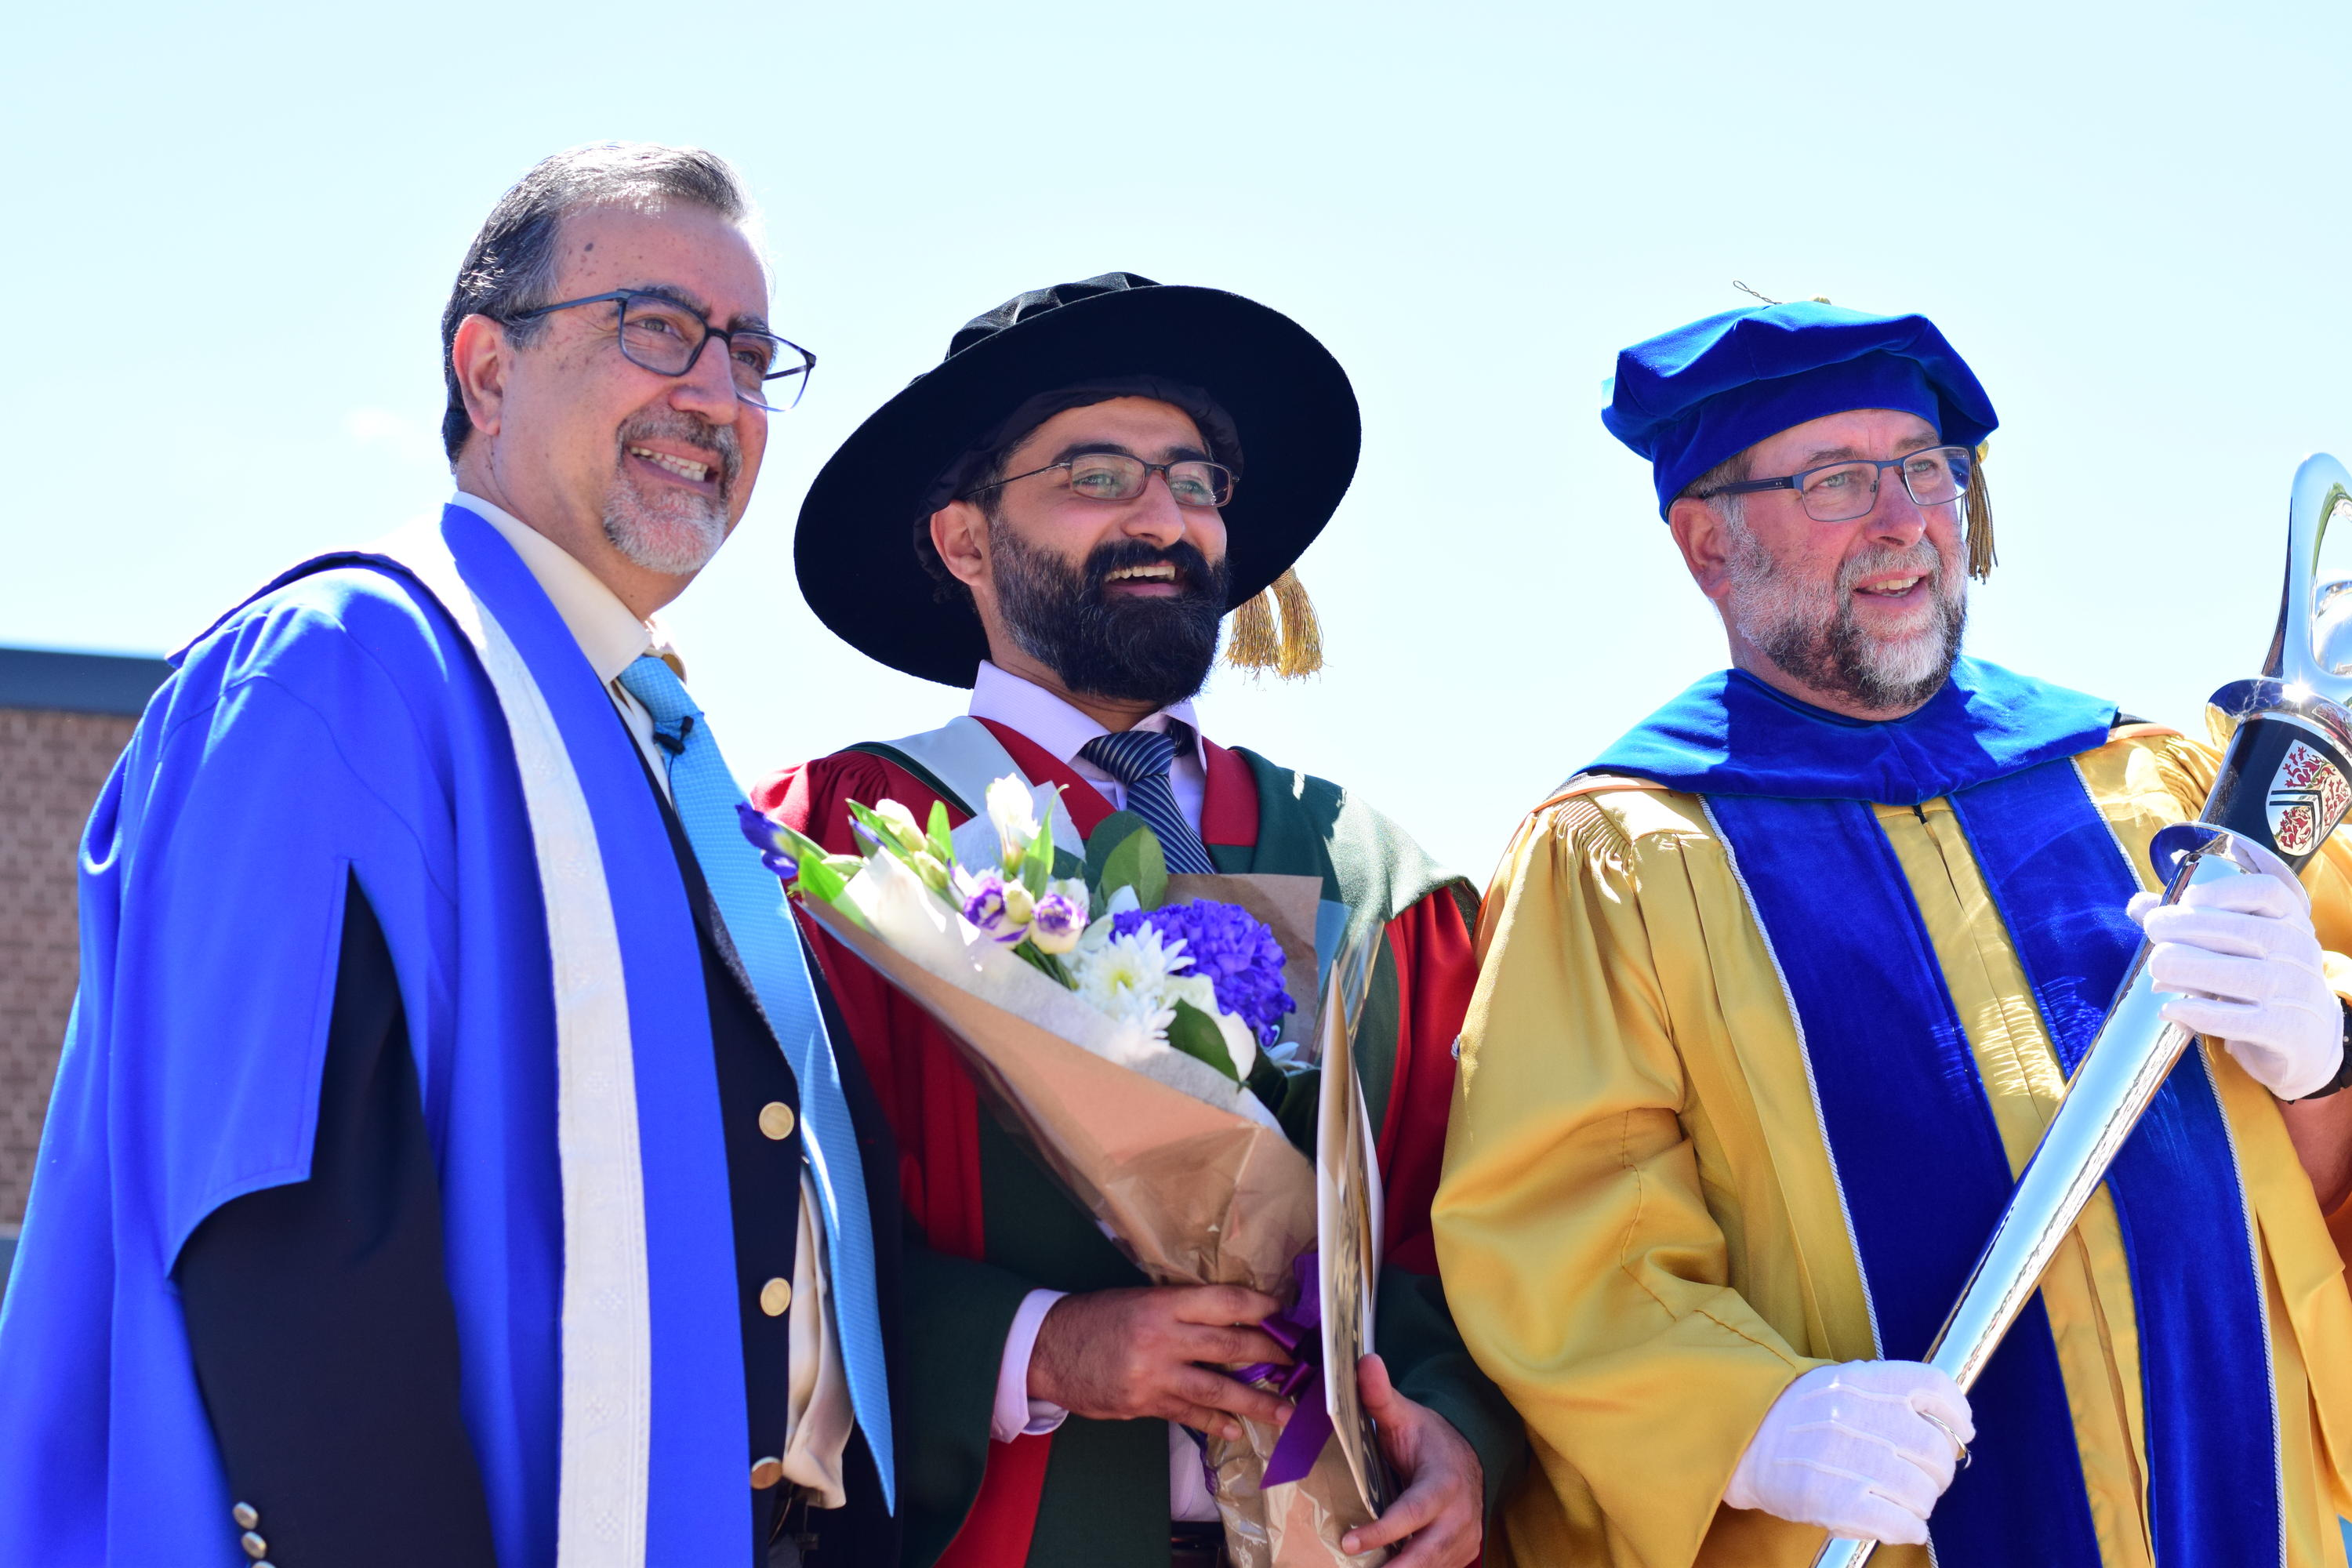 Feridun Hamdullahpur poses with members of the academic procession.